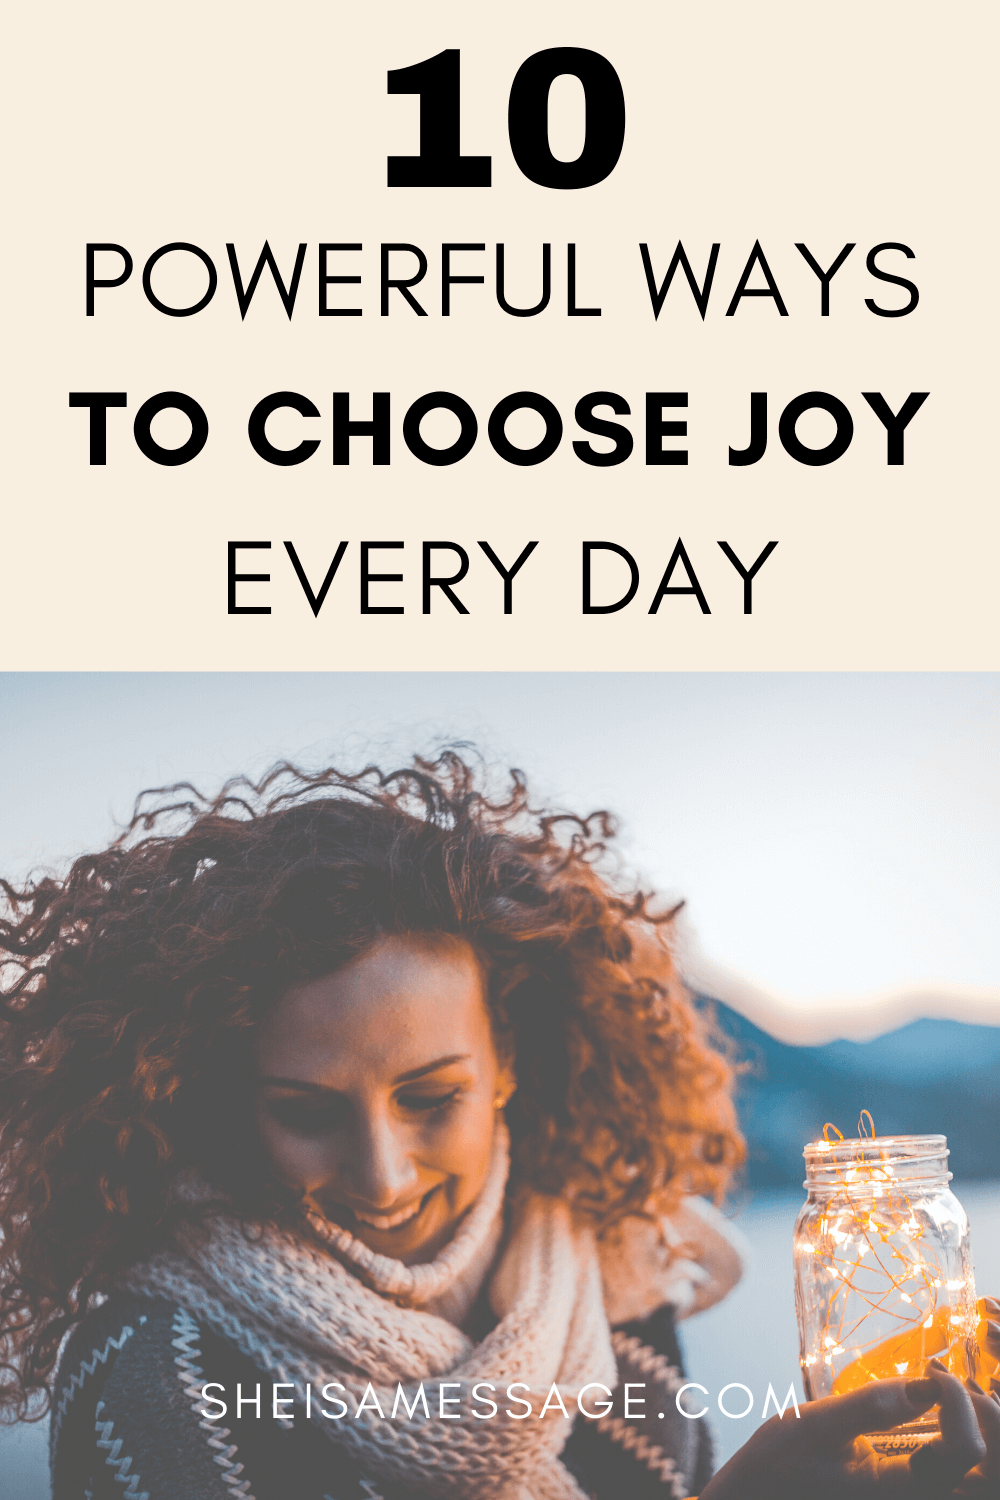 10 Powerful Ways To Choose Joy Every Day Truths To Help You Start Today Pinterest Image